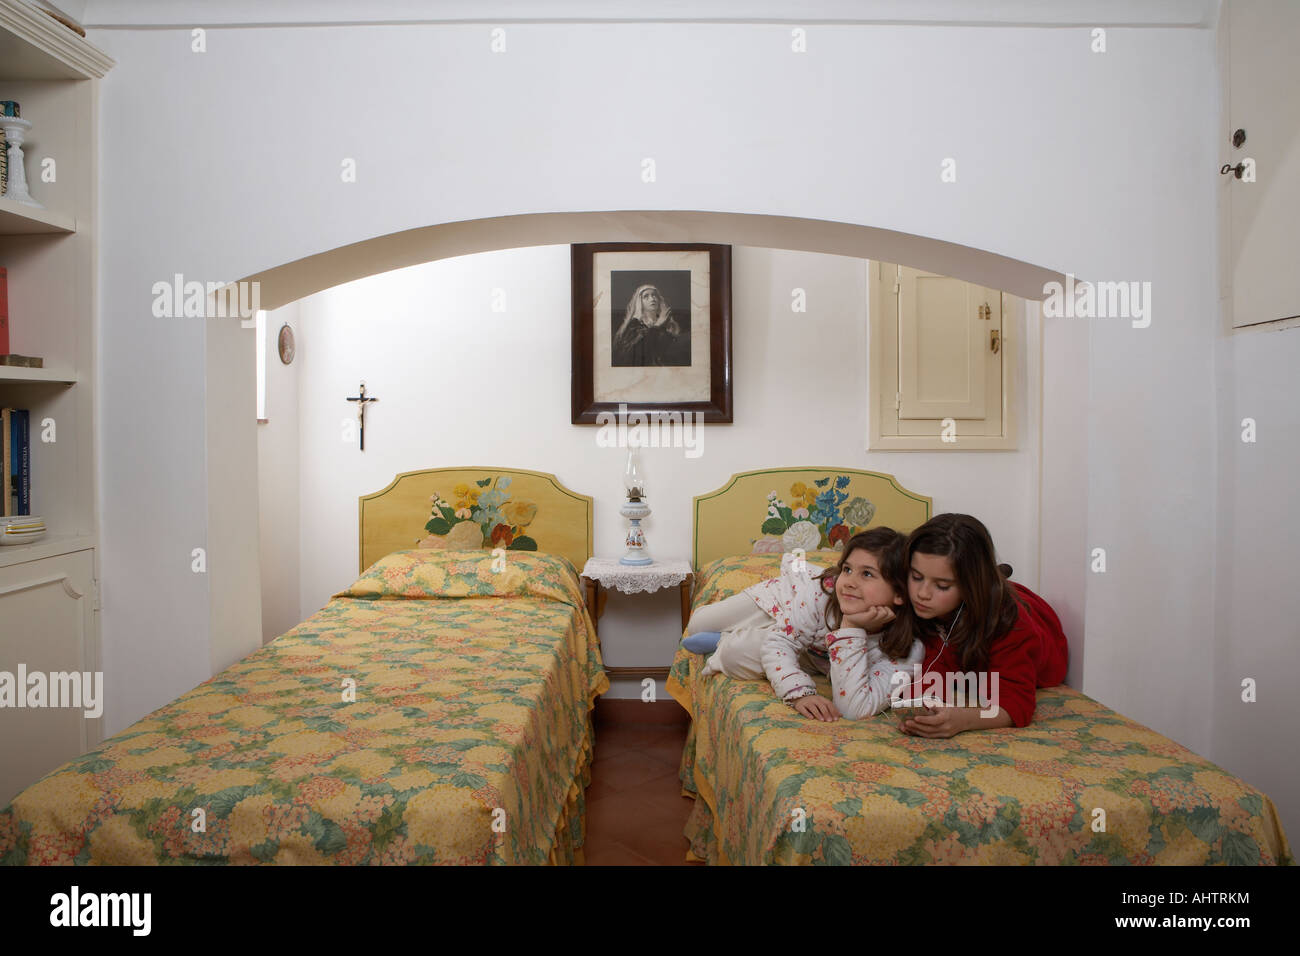 italians relaxing stockfotos italians relaxing bilder seite 2 alamy. Black Bedroom Furniture Sets. Home Design Ideas